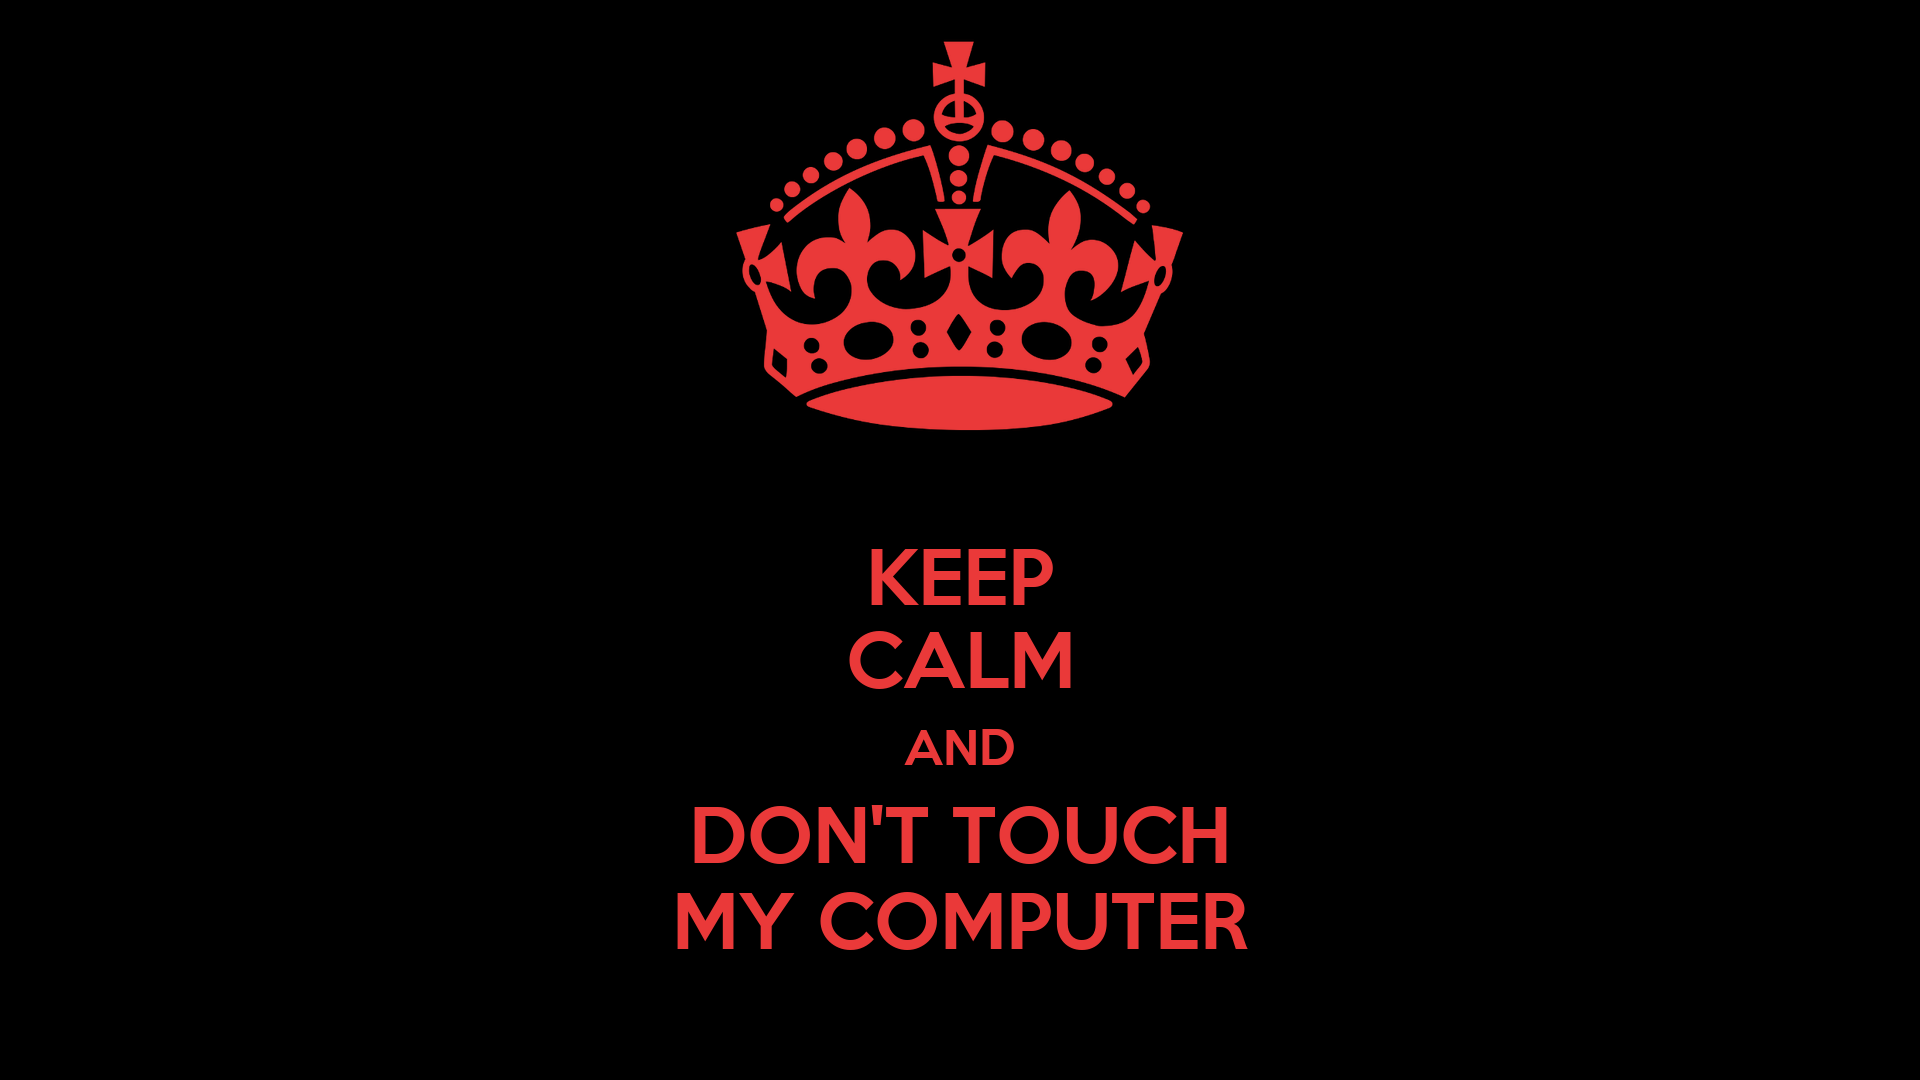 KEEP CALM AND DON'T TOUCH MY COMPUTER Poster | karan